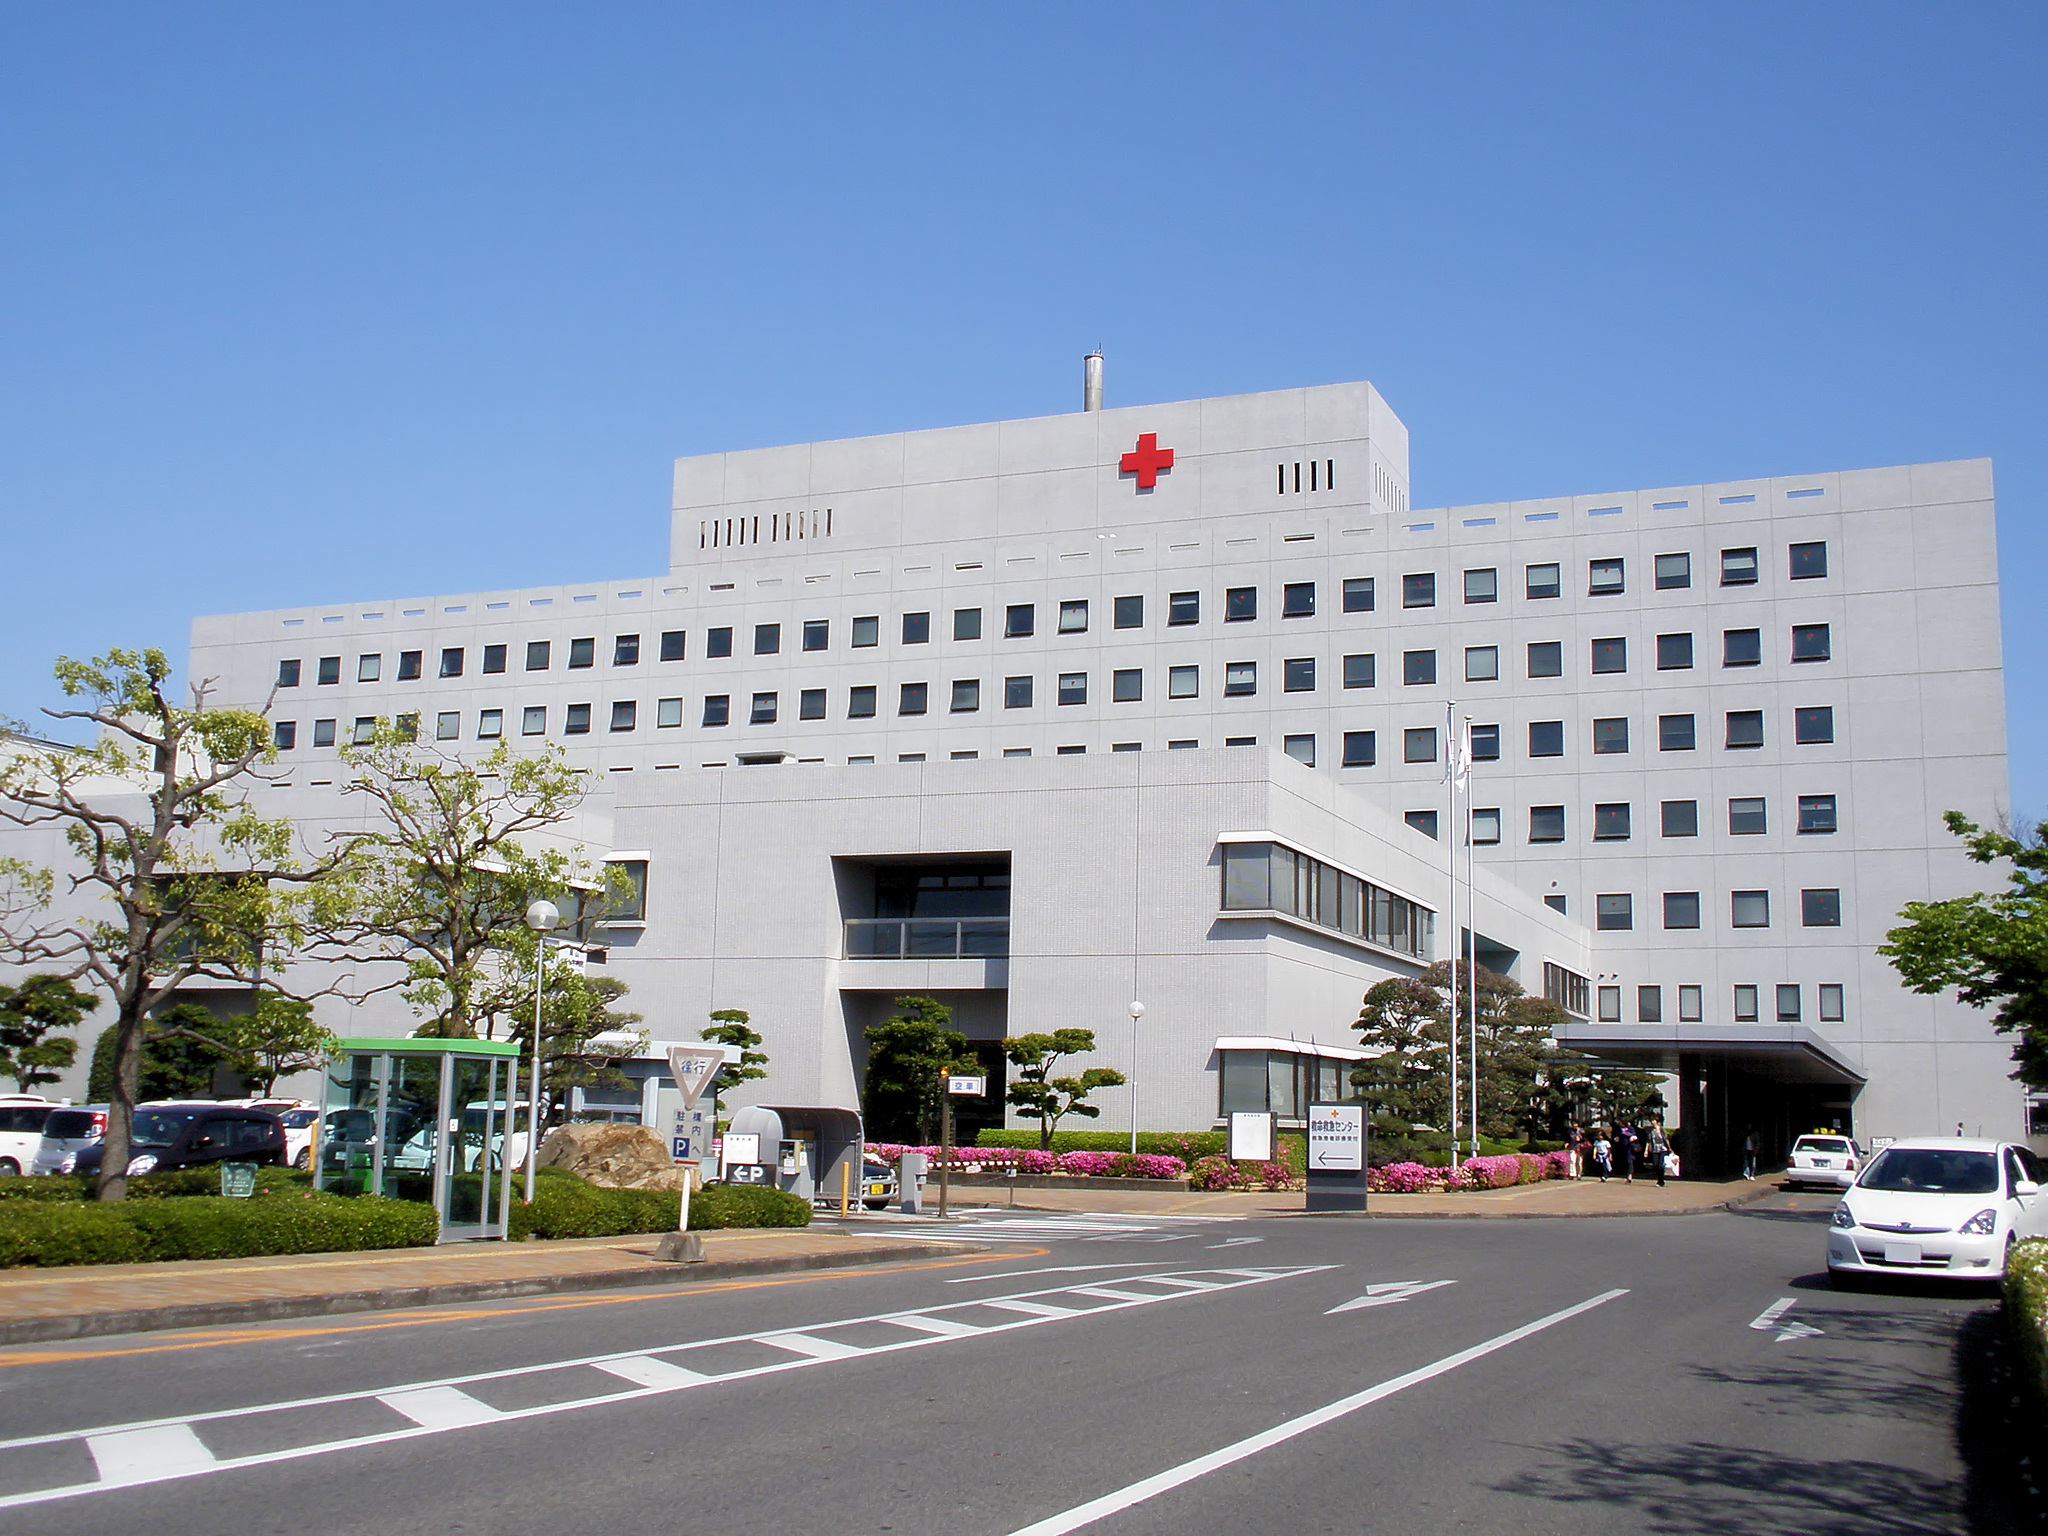 File:Okayama Red Cross Hospital.jpg - Wikimedia Commons